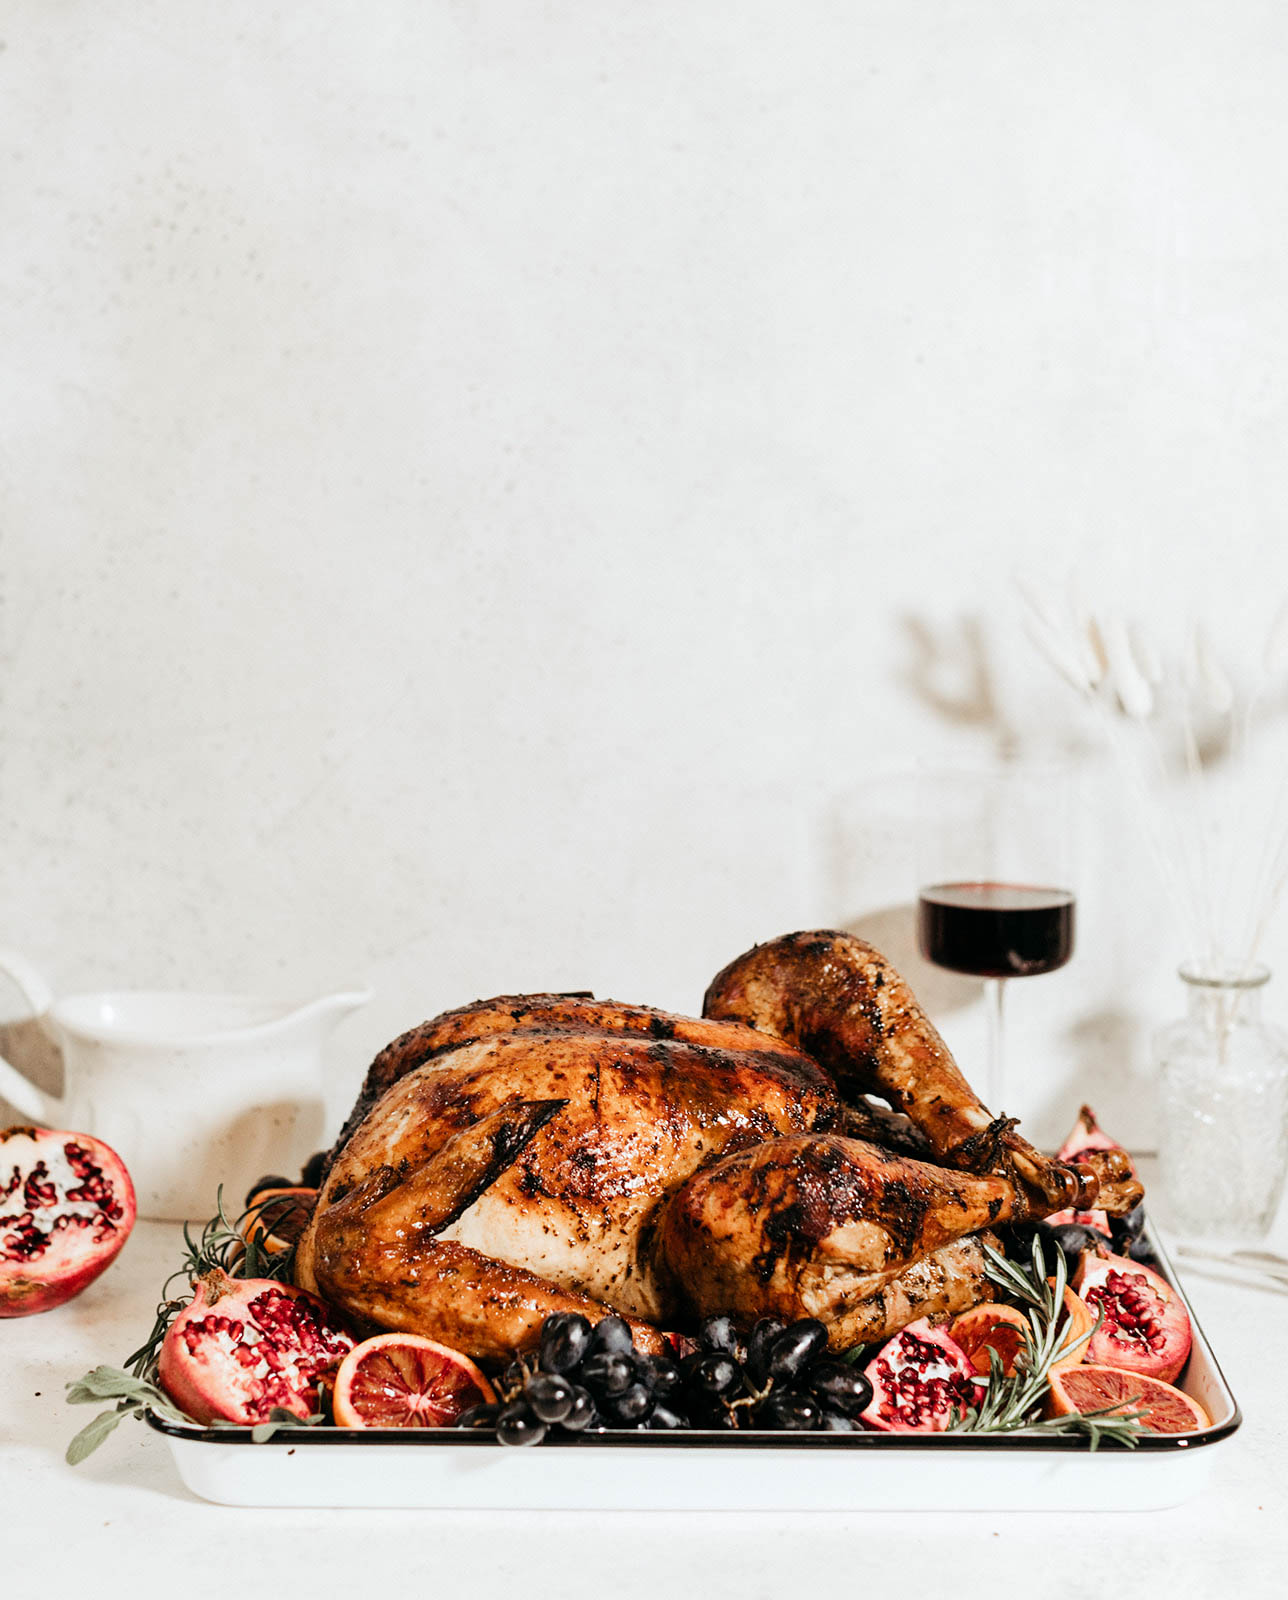 whole roasted turkey on a platter with fruit